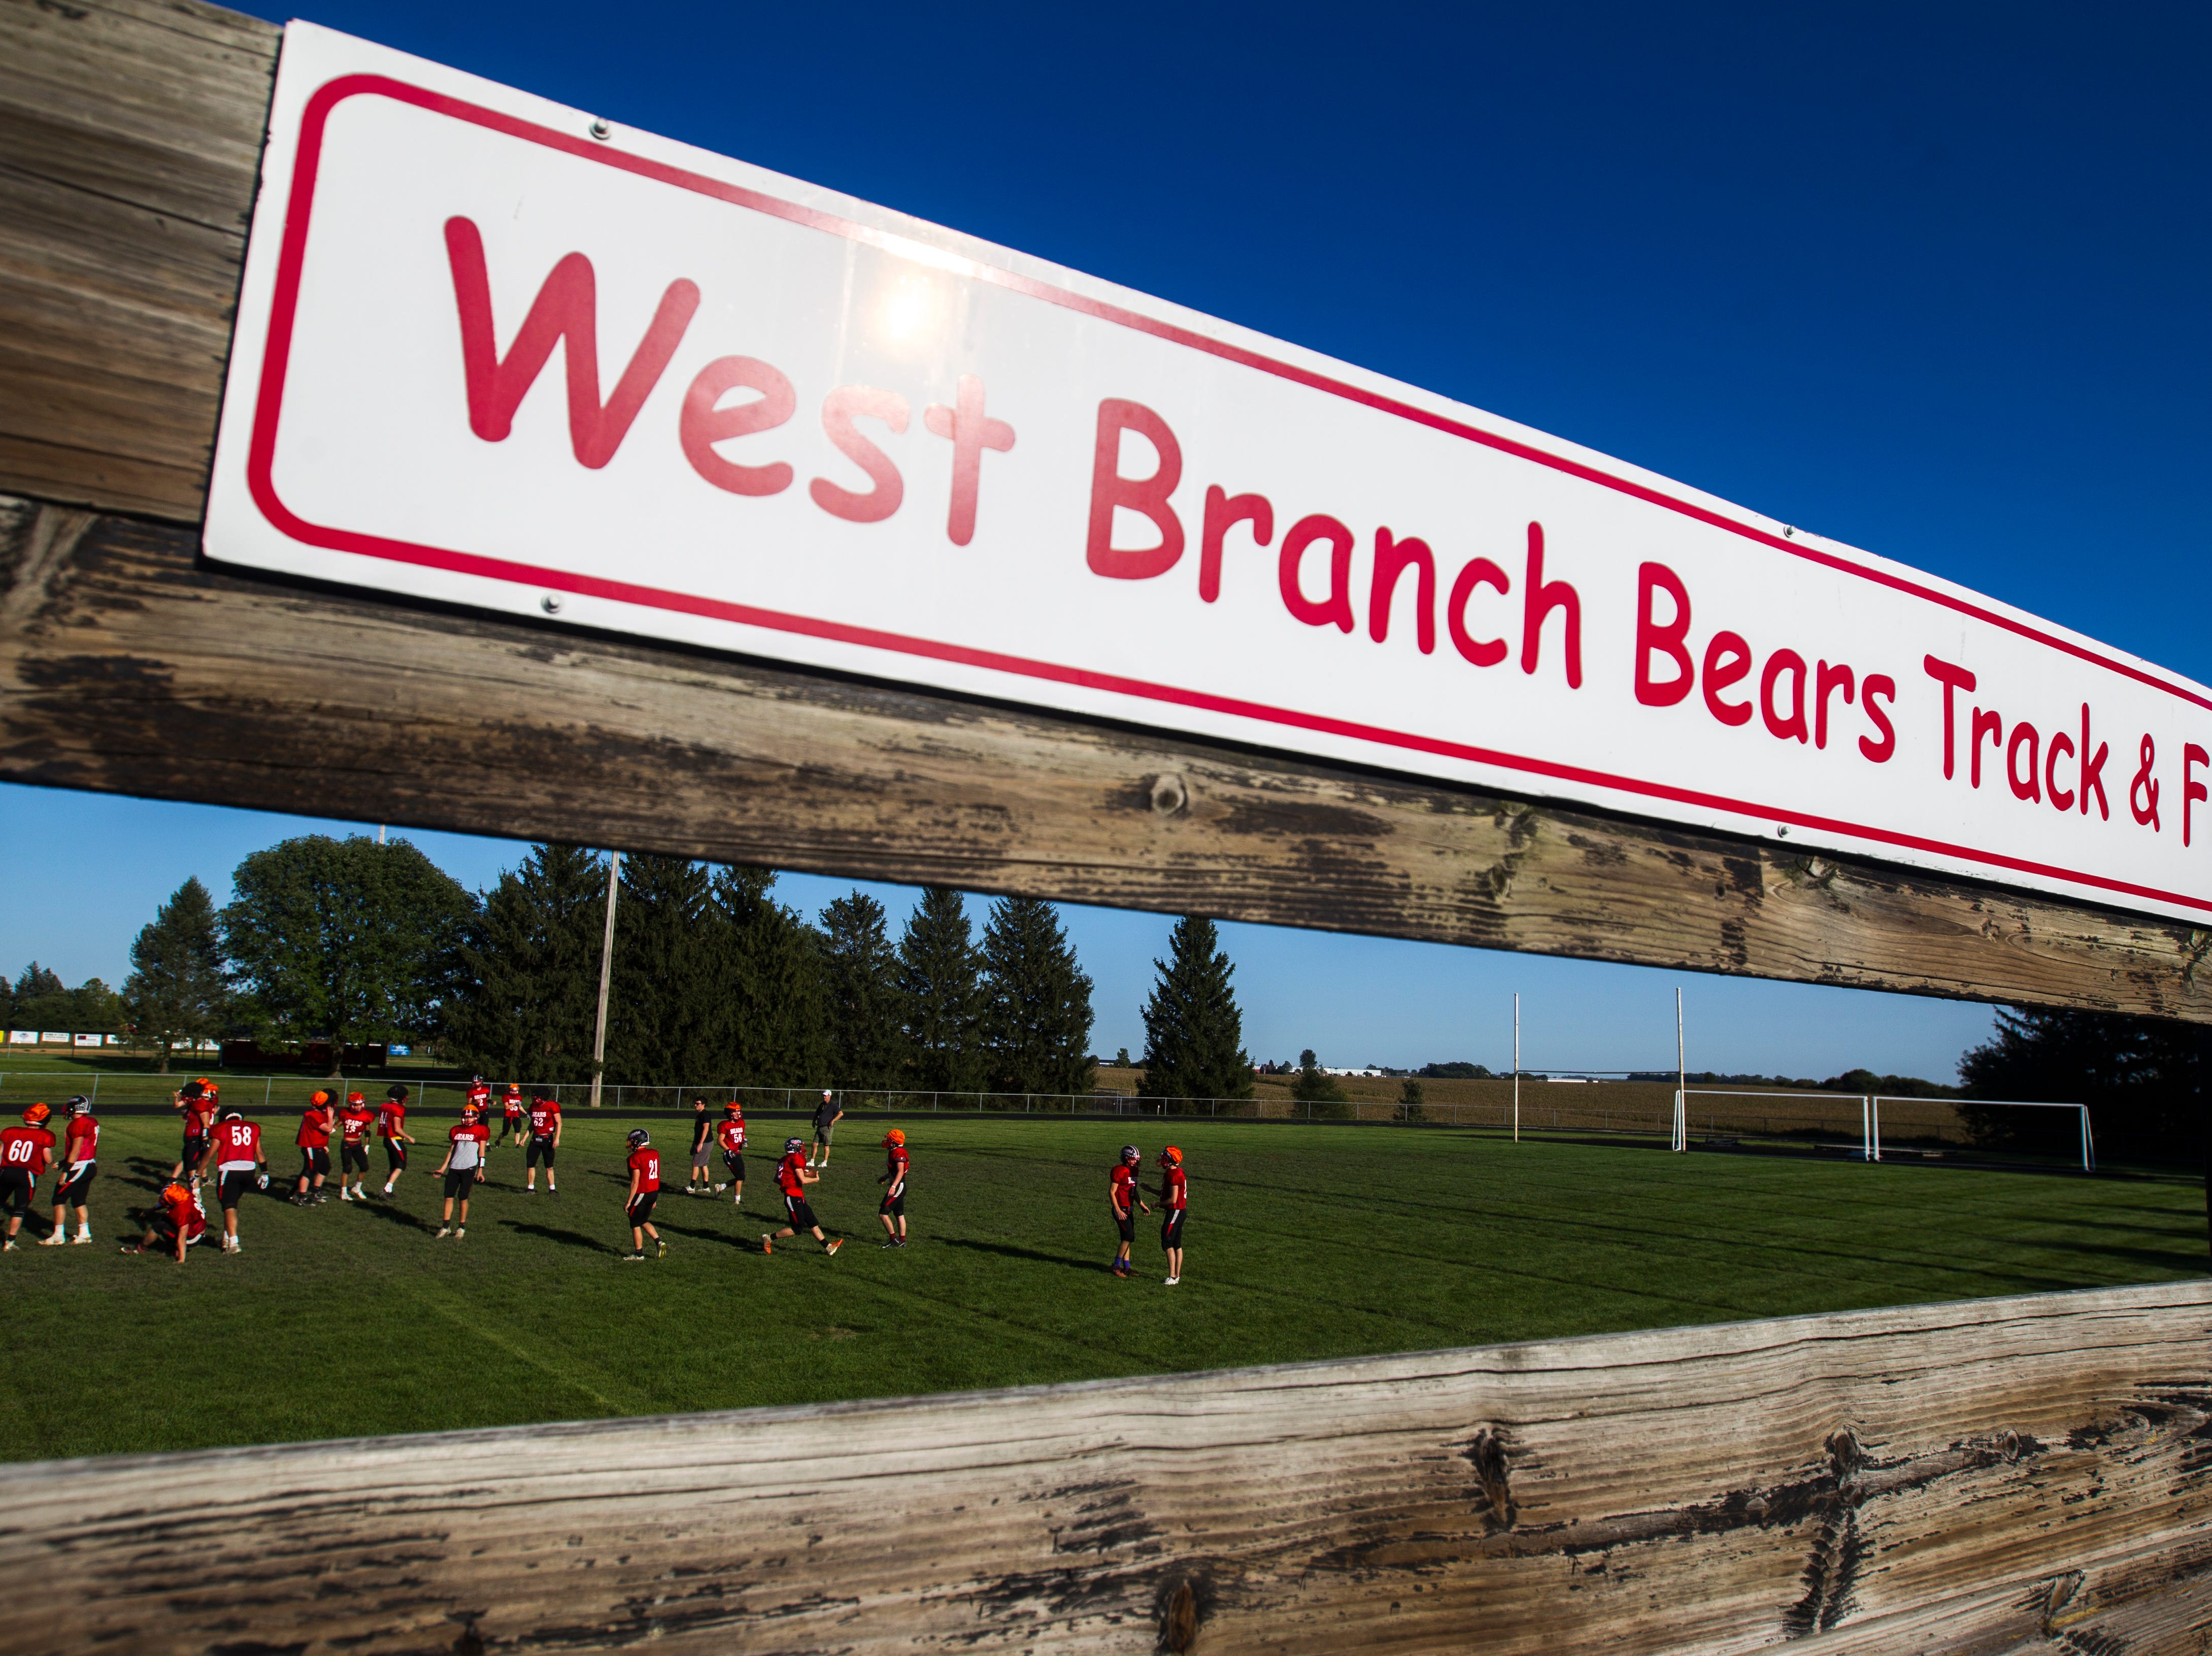 West Branch football players go through drills during a varsity football practice on Tuesday, Sept. 11, 2018, at the West Branch High School practice field.